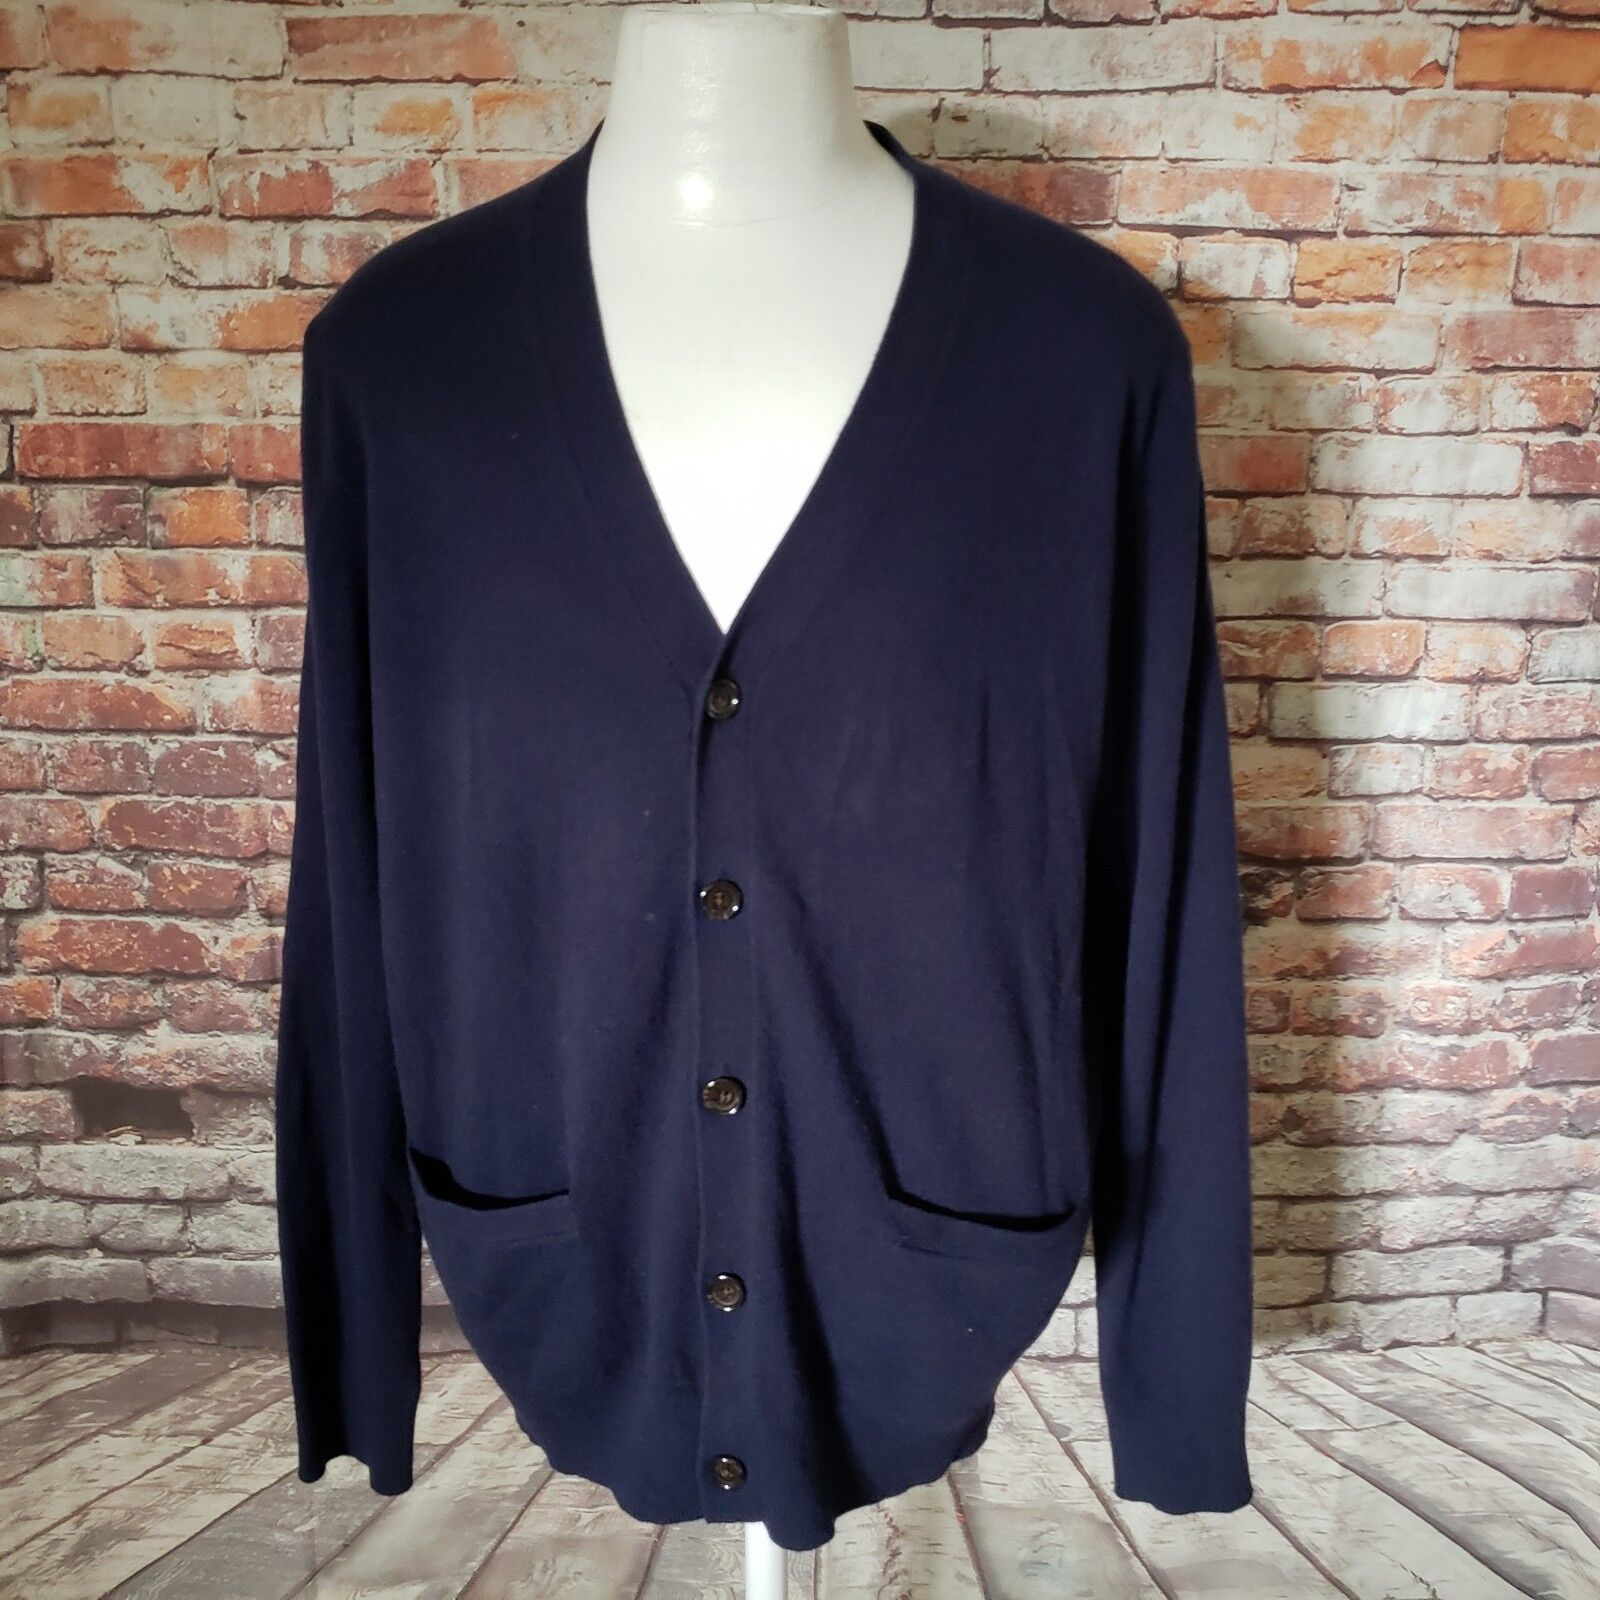 POLO RALPH LAUREN WOOL BUTTONED DOWN CARDIGAN SWEATER SIZE L A51-29